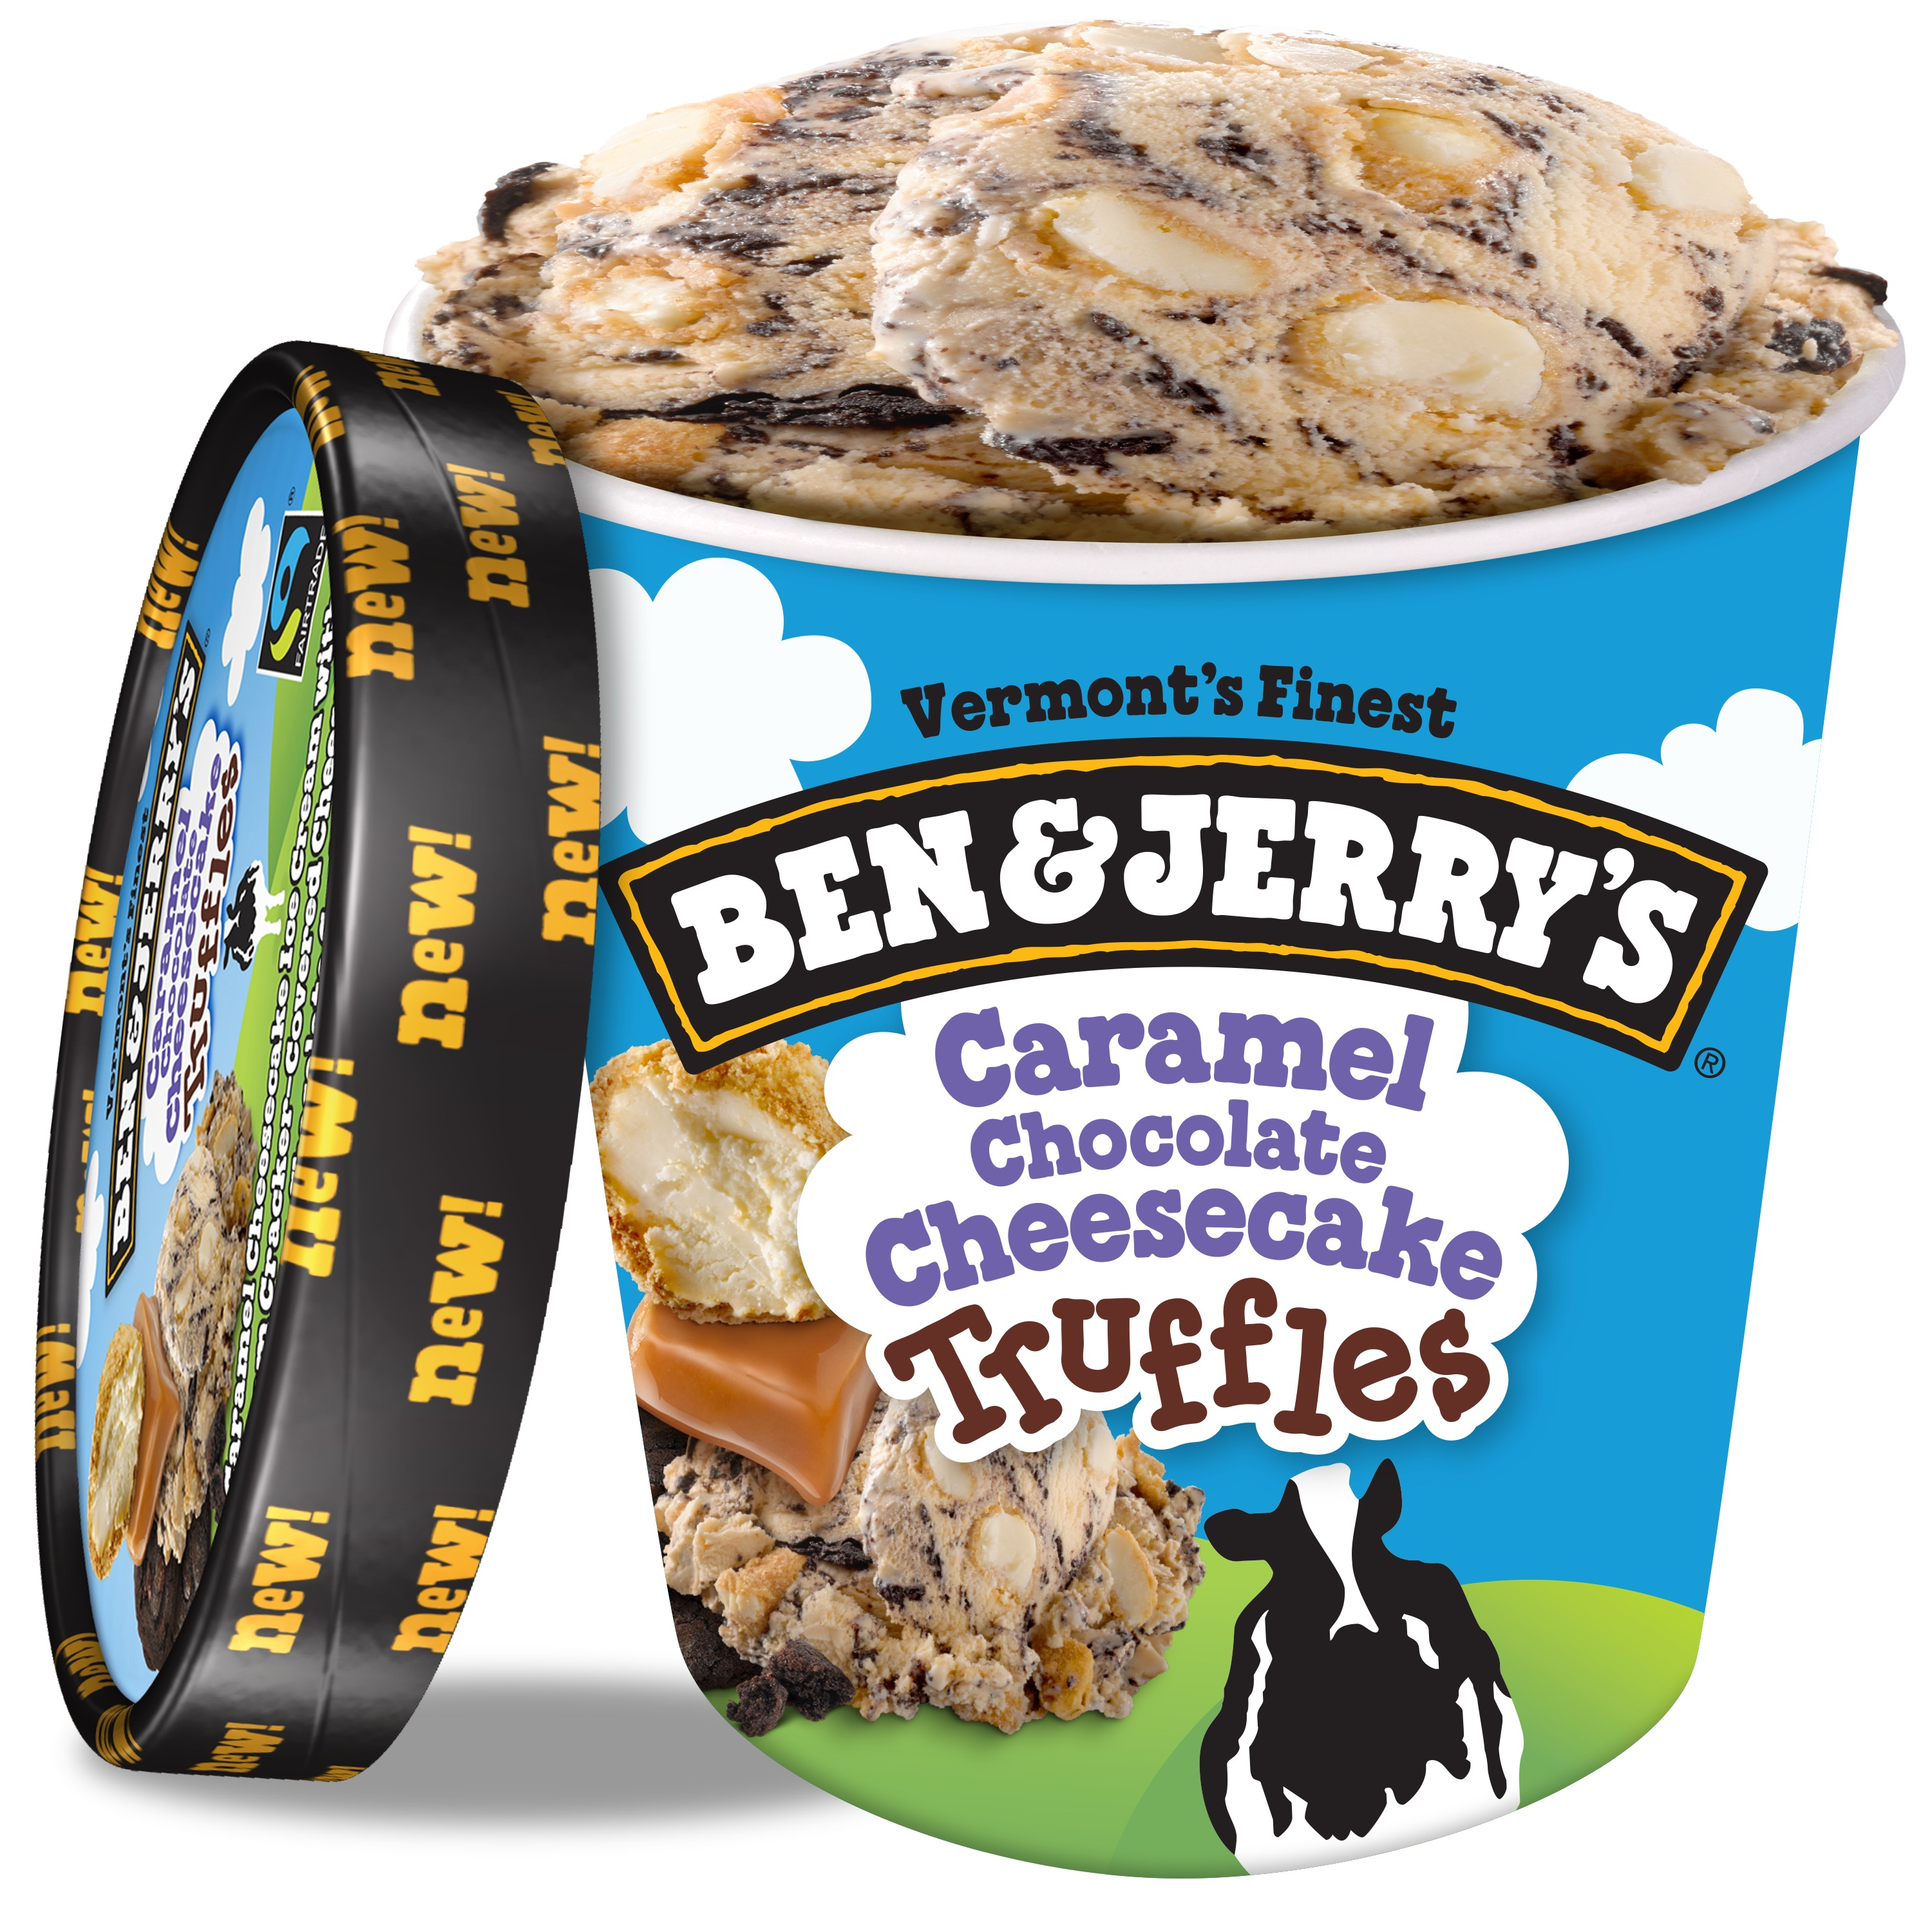 Ben & Jerry's Caramel Chocolate Cheesecake Truffles Ice Cream, 16oz